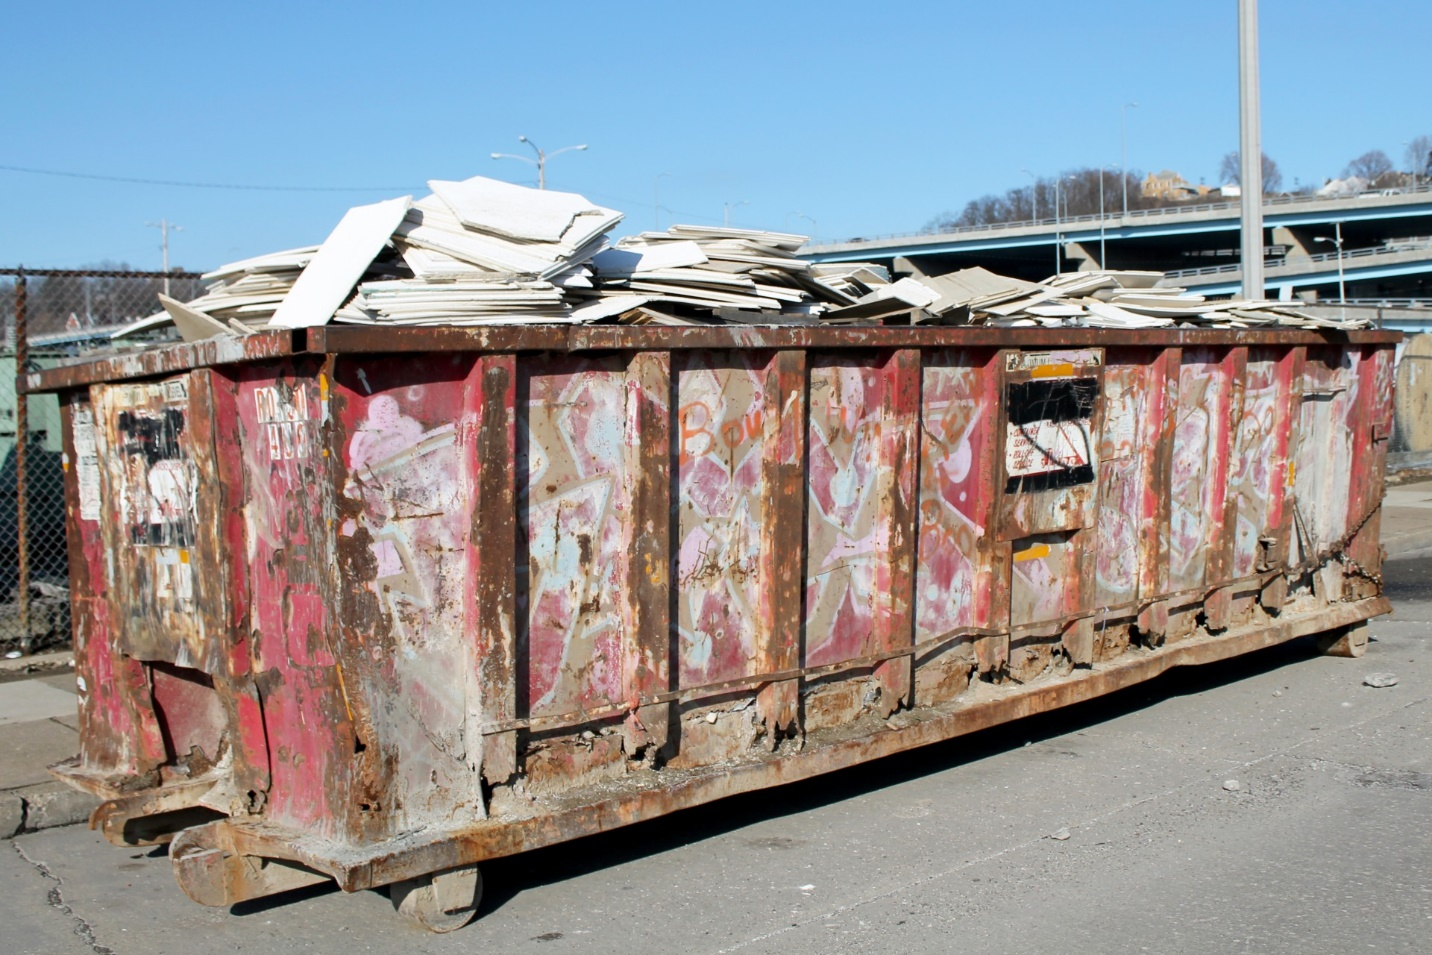 dumpster garbage industry free photo